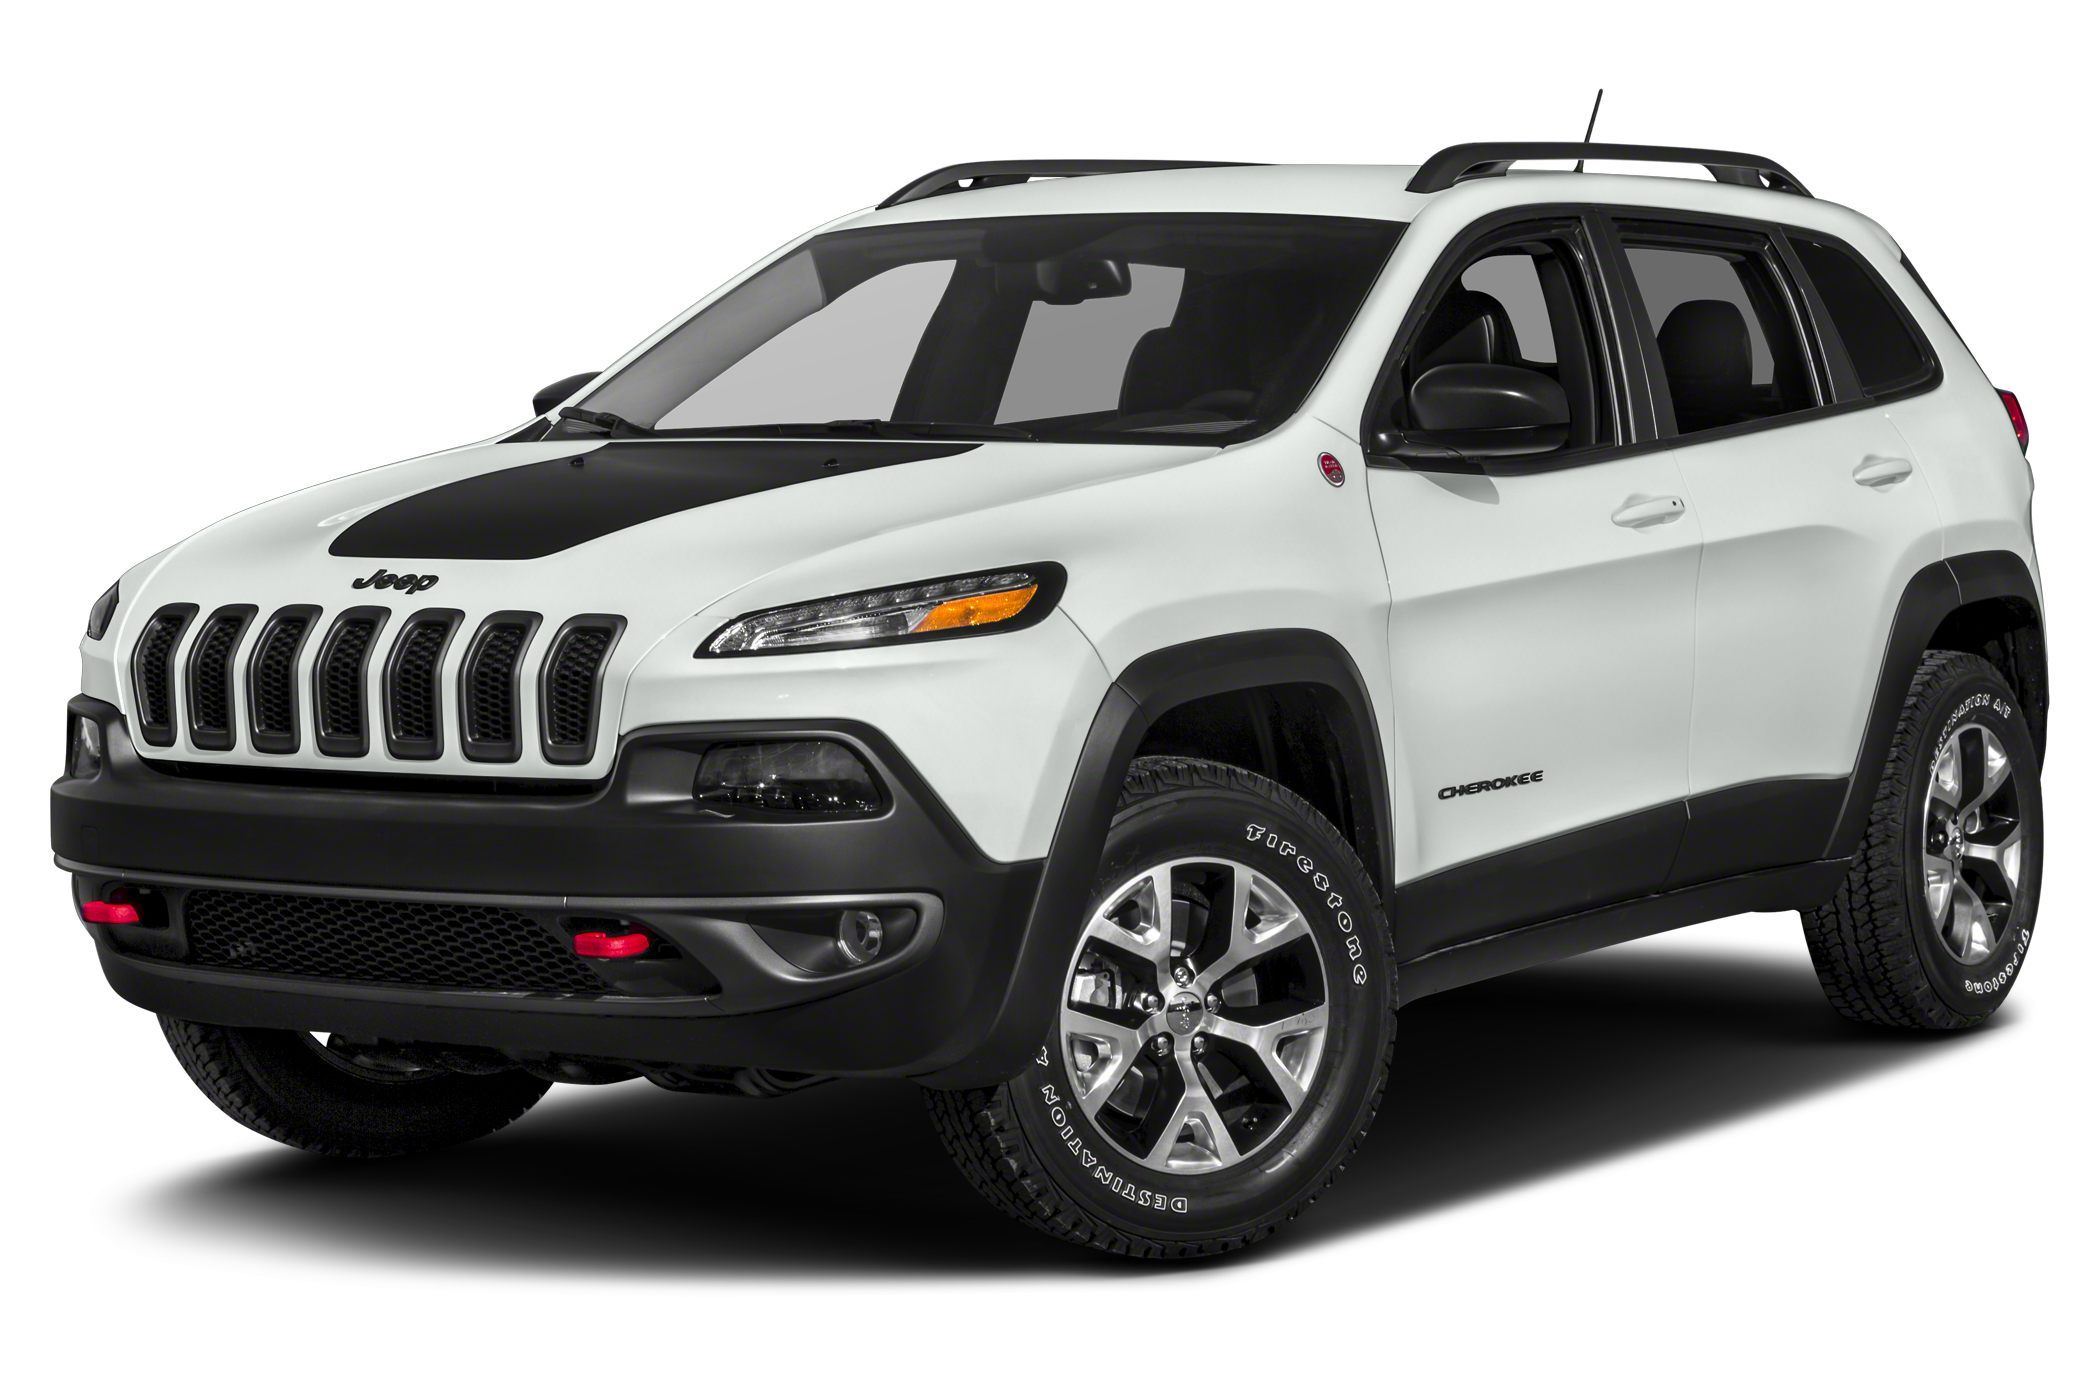 2018 Jeep Cherokee Trailhawk 4dr 4x4 Pricing and Options